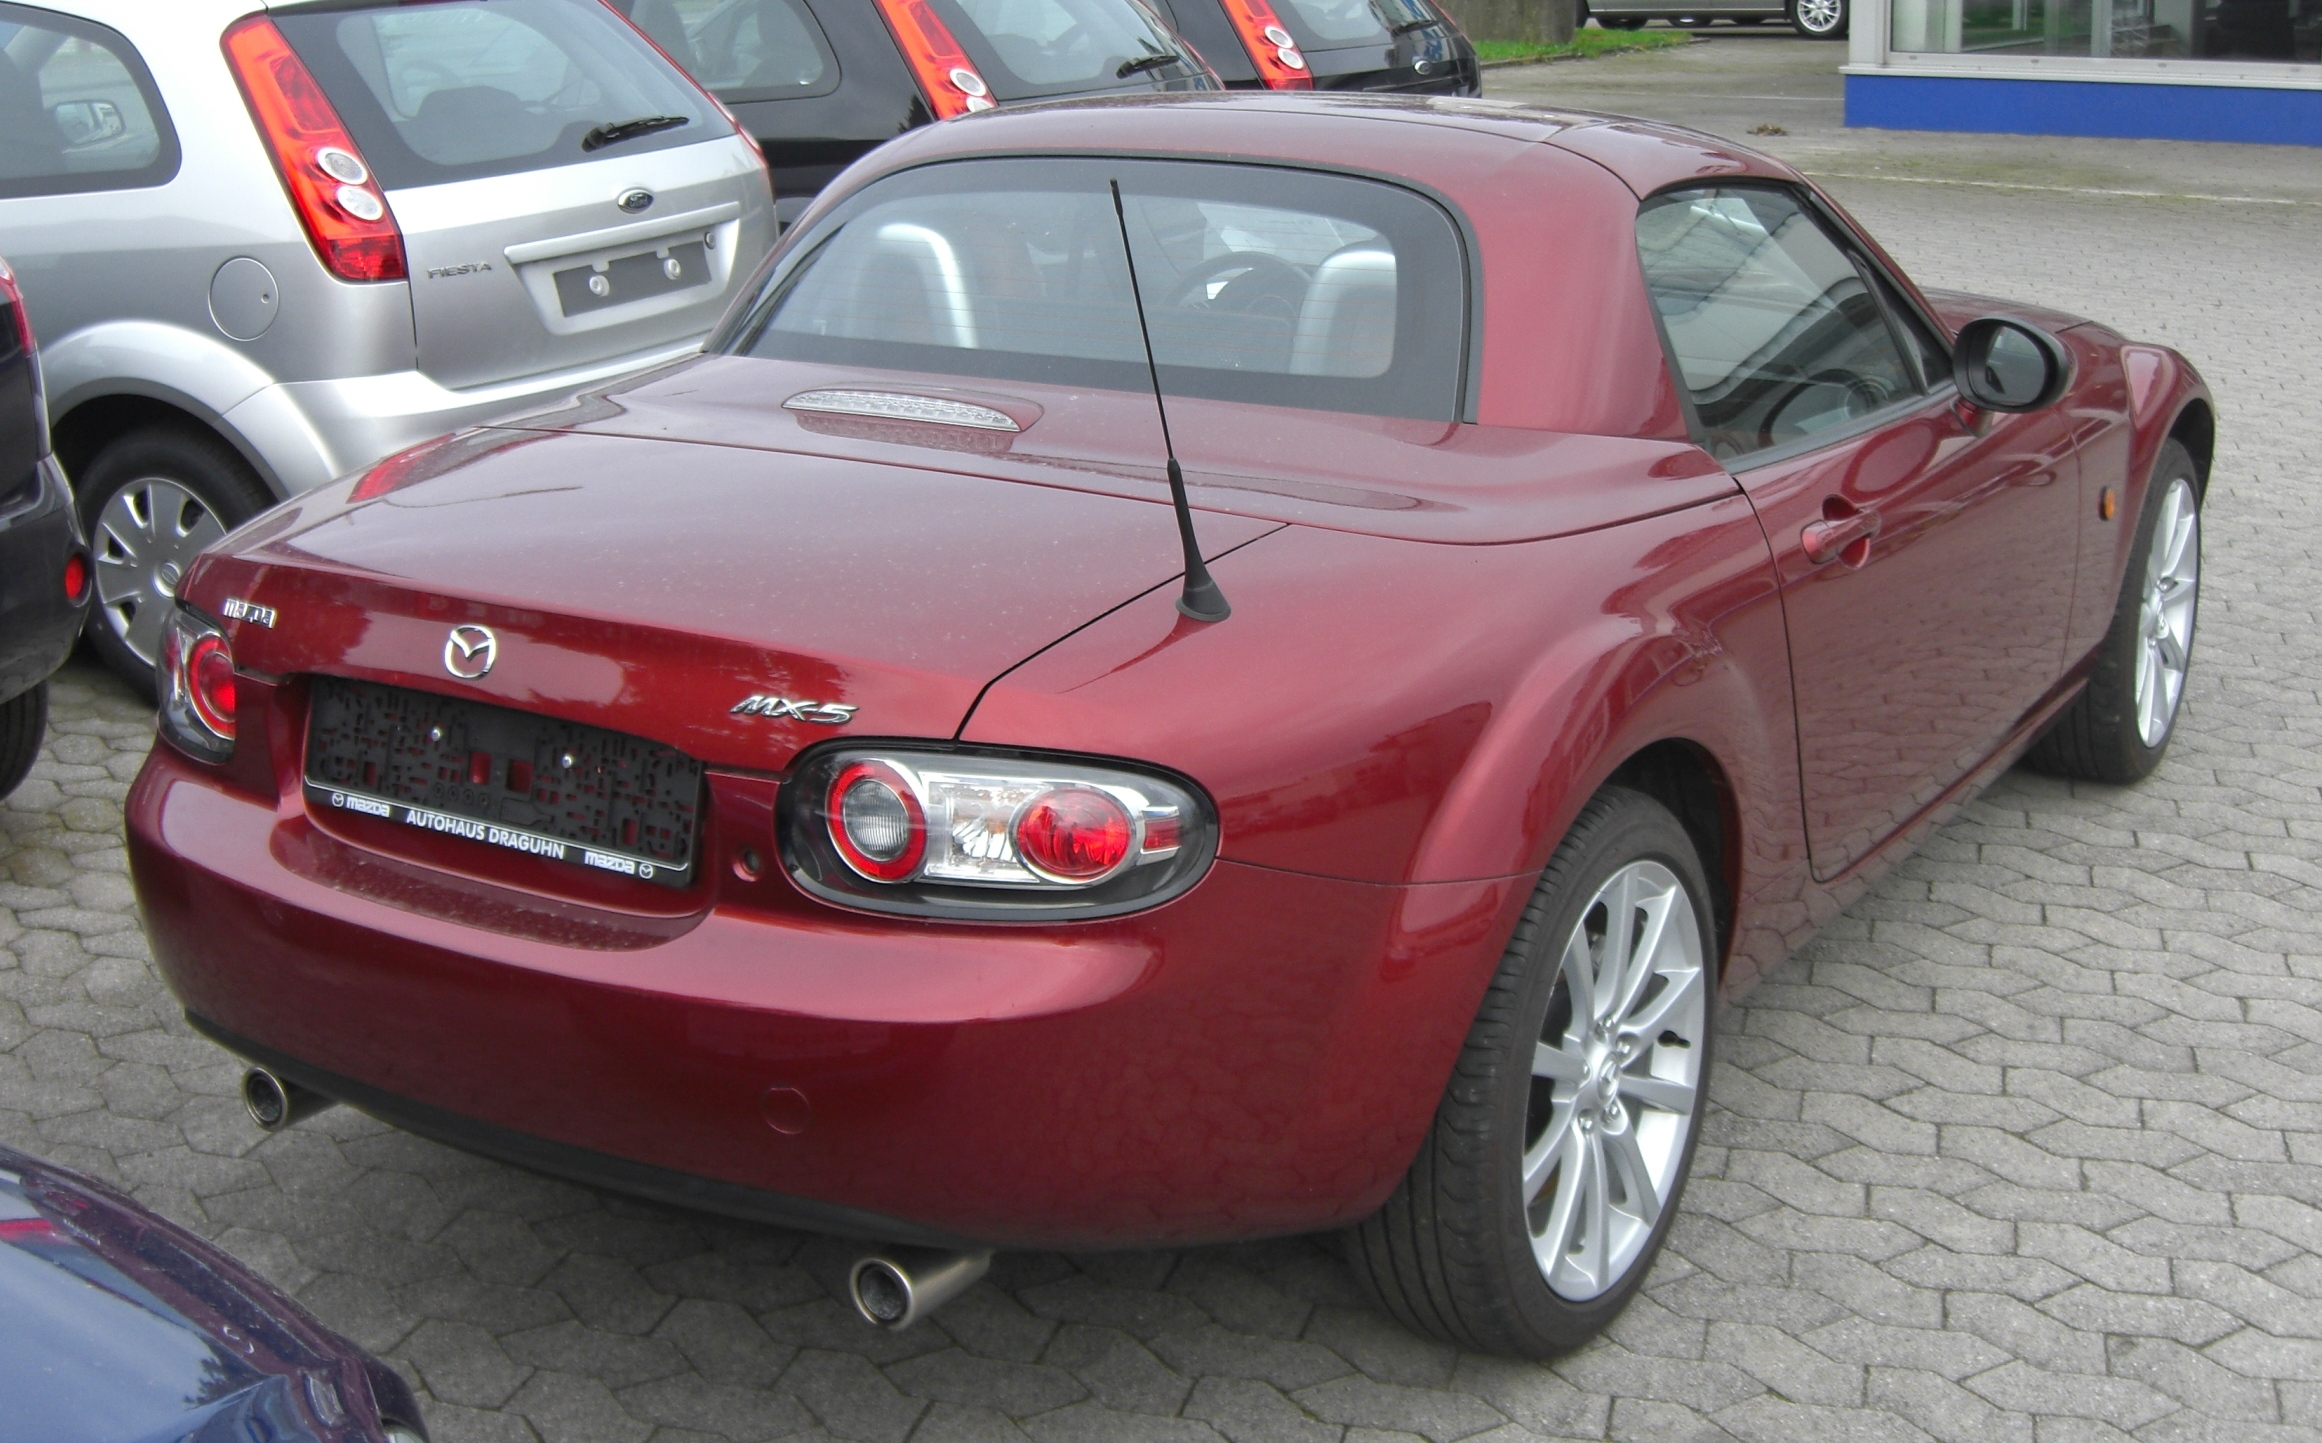 file mazda mx 5 nc rear jpg wikimedia commons. Black Bedroom Furniture Sets. Home Design Ideas